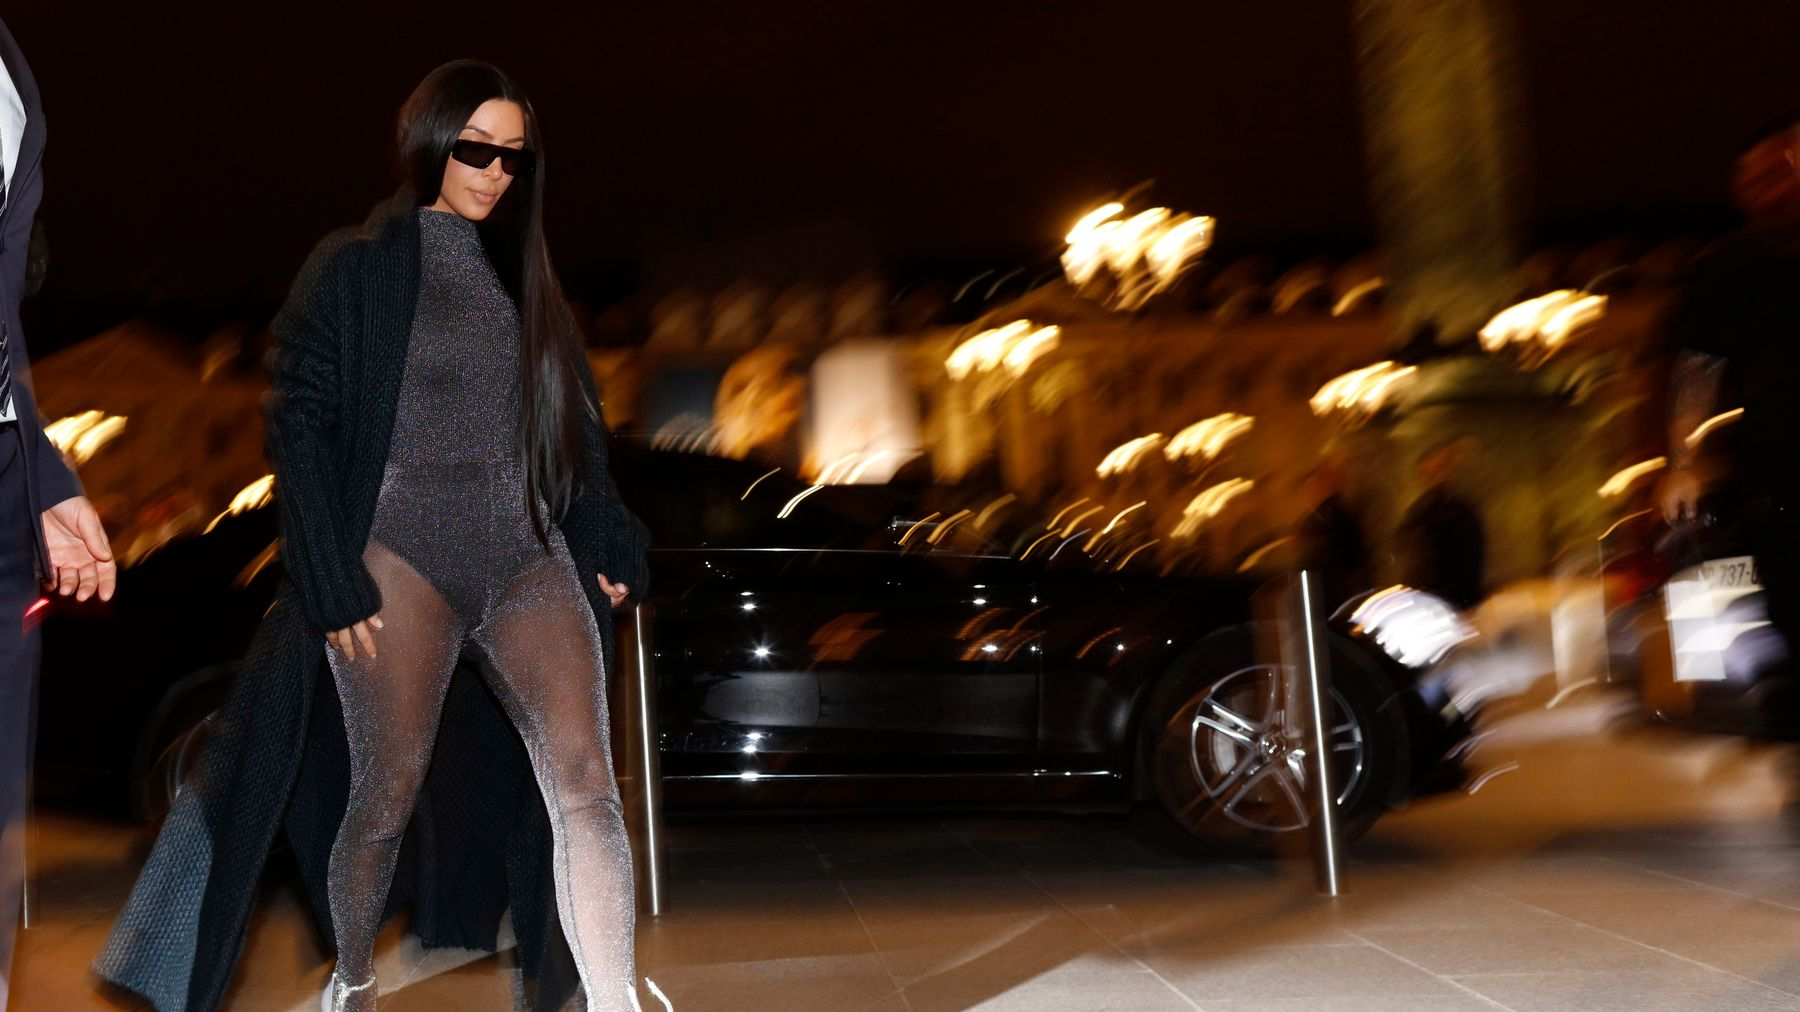 Kim Kardashian Proves The Haters Wrong, Aces Law Exam | Grazia